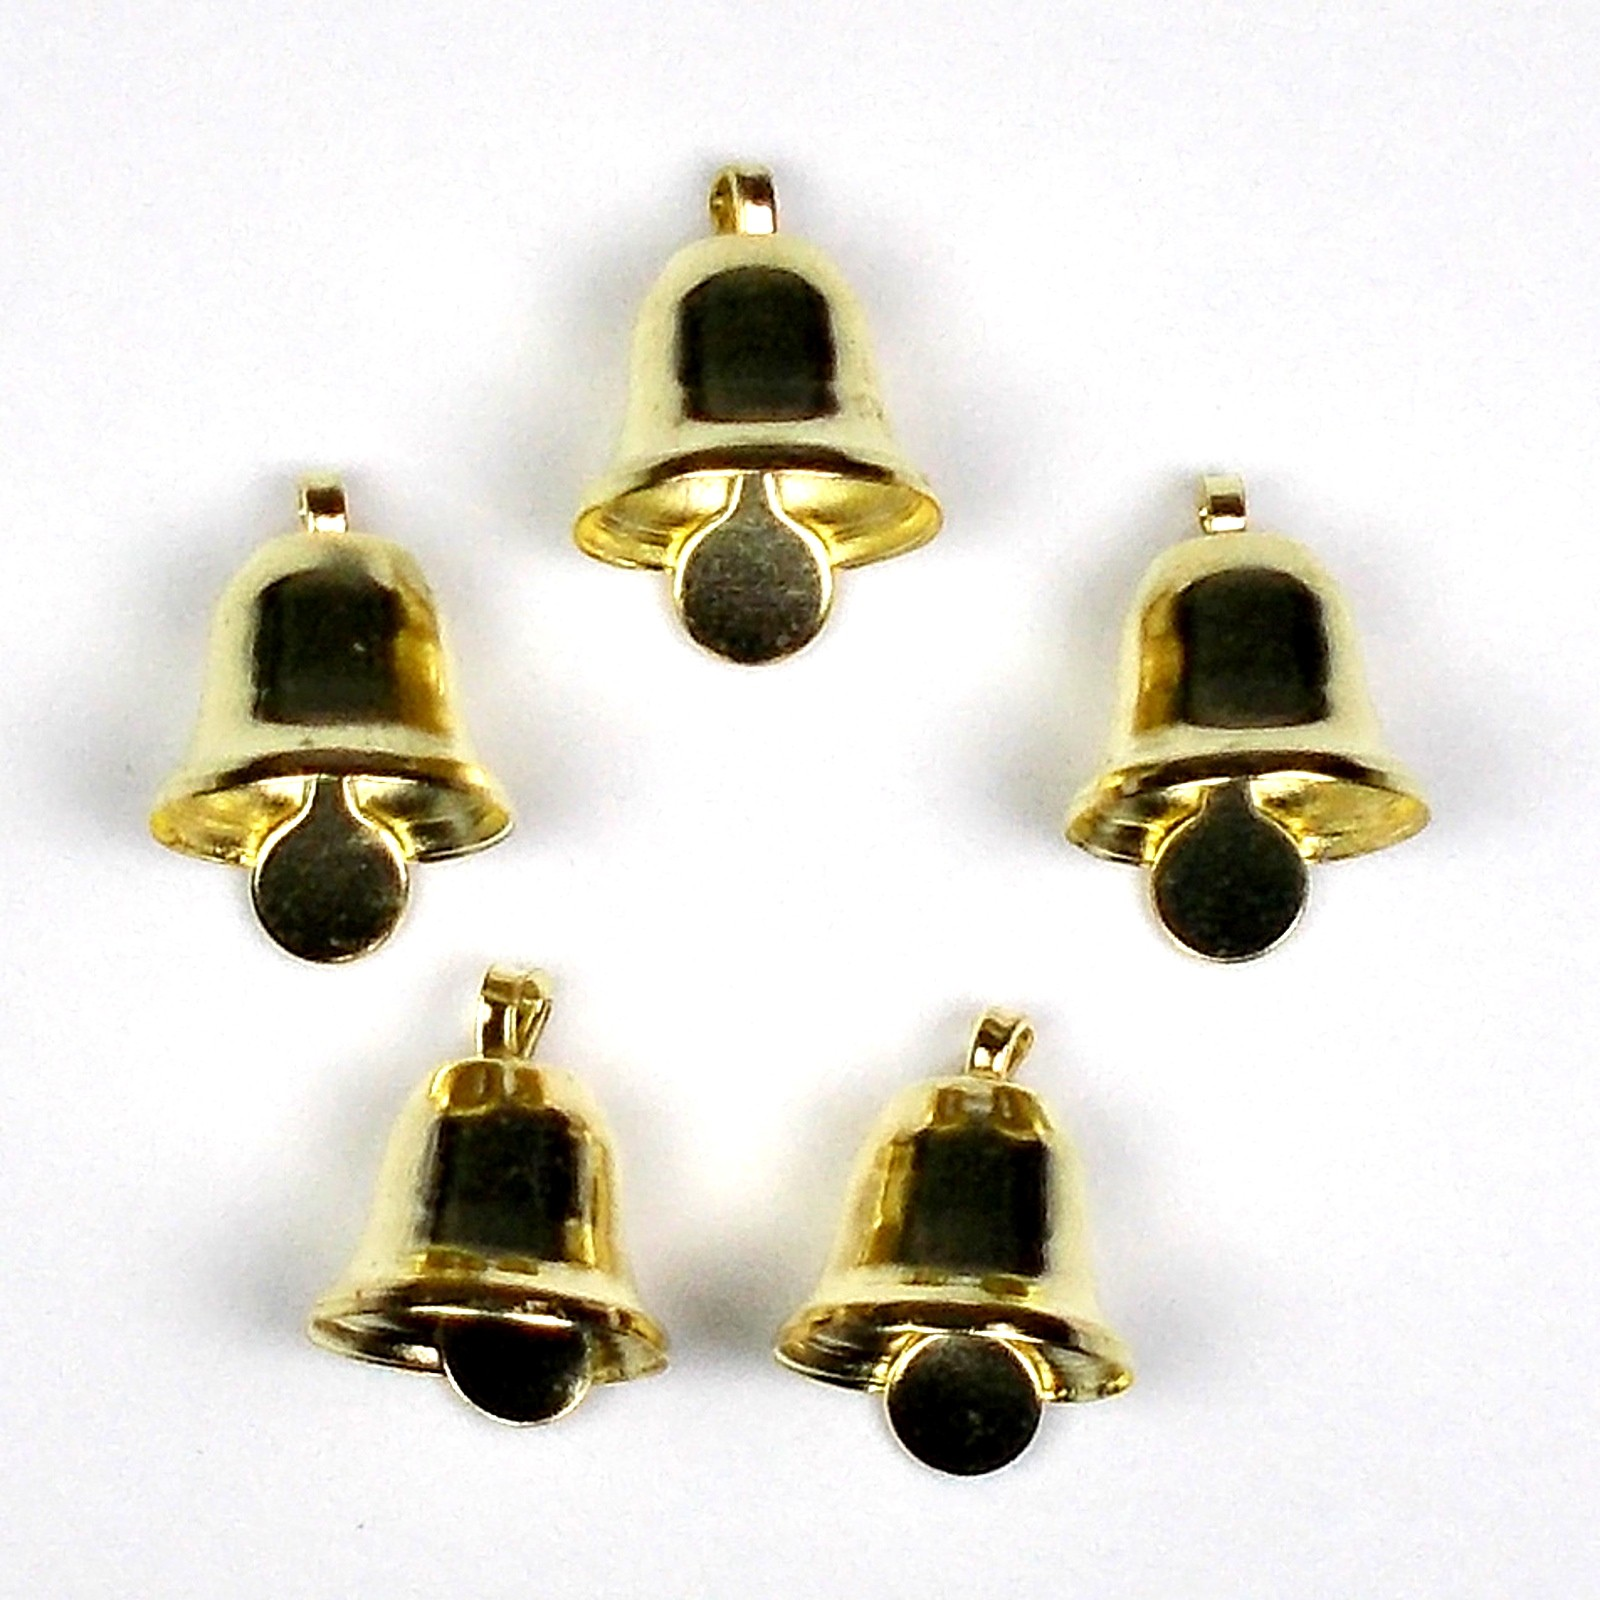 Mini Liberty Bells Gold 10mm Pack of 5